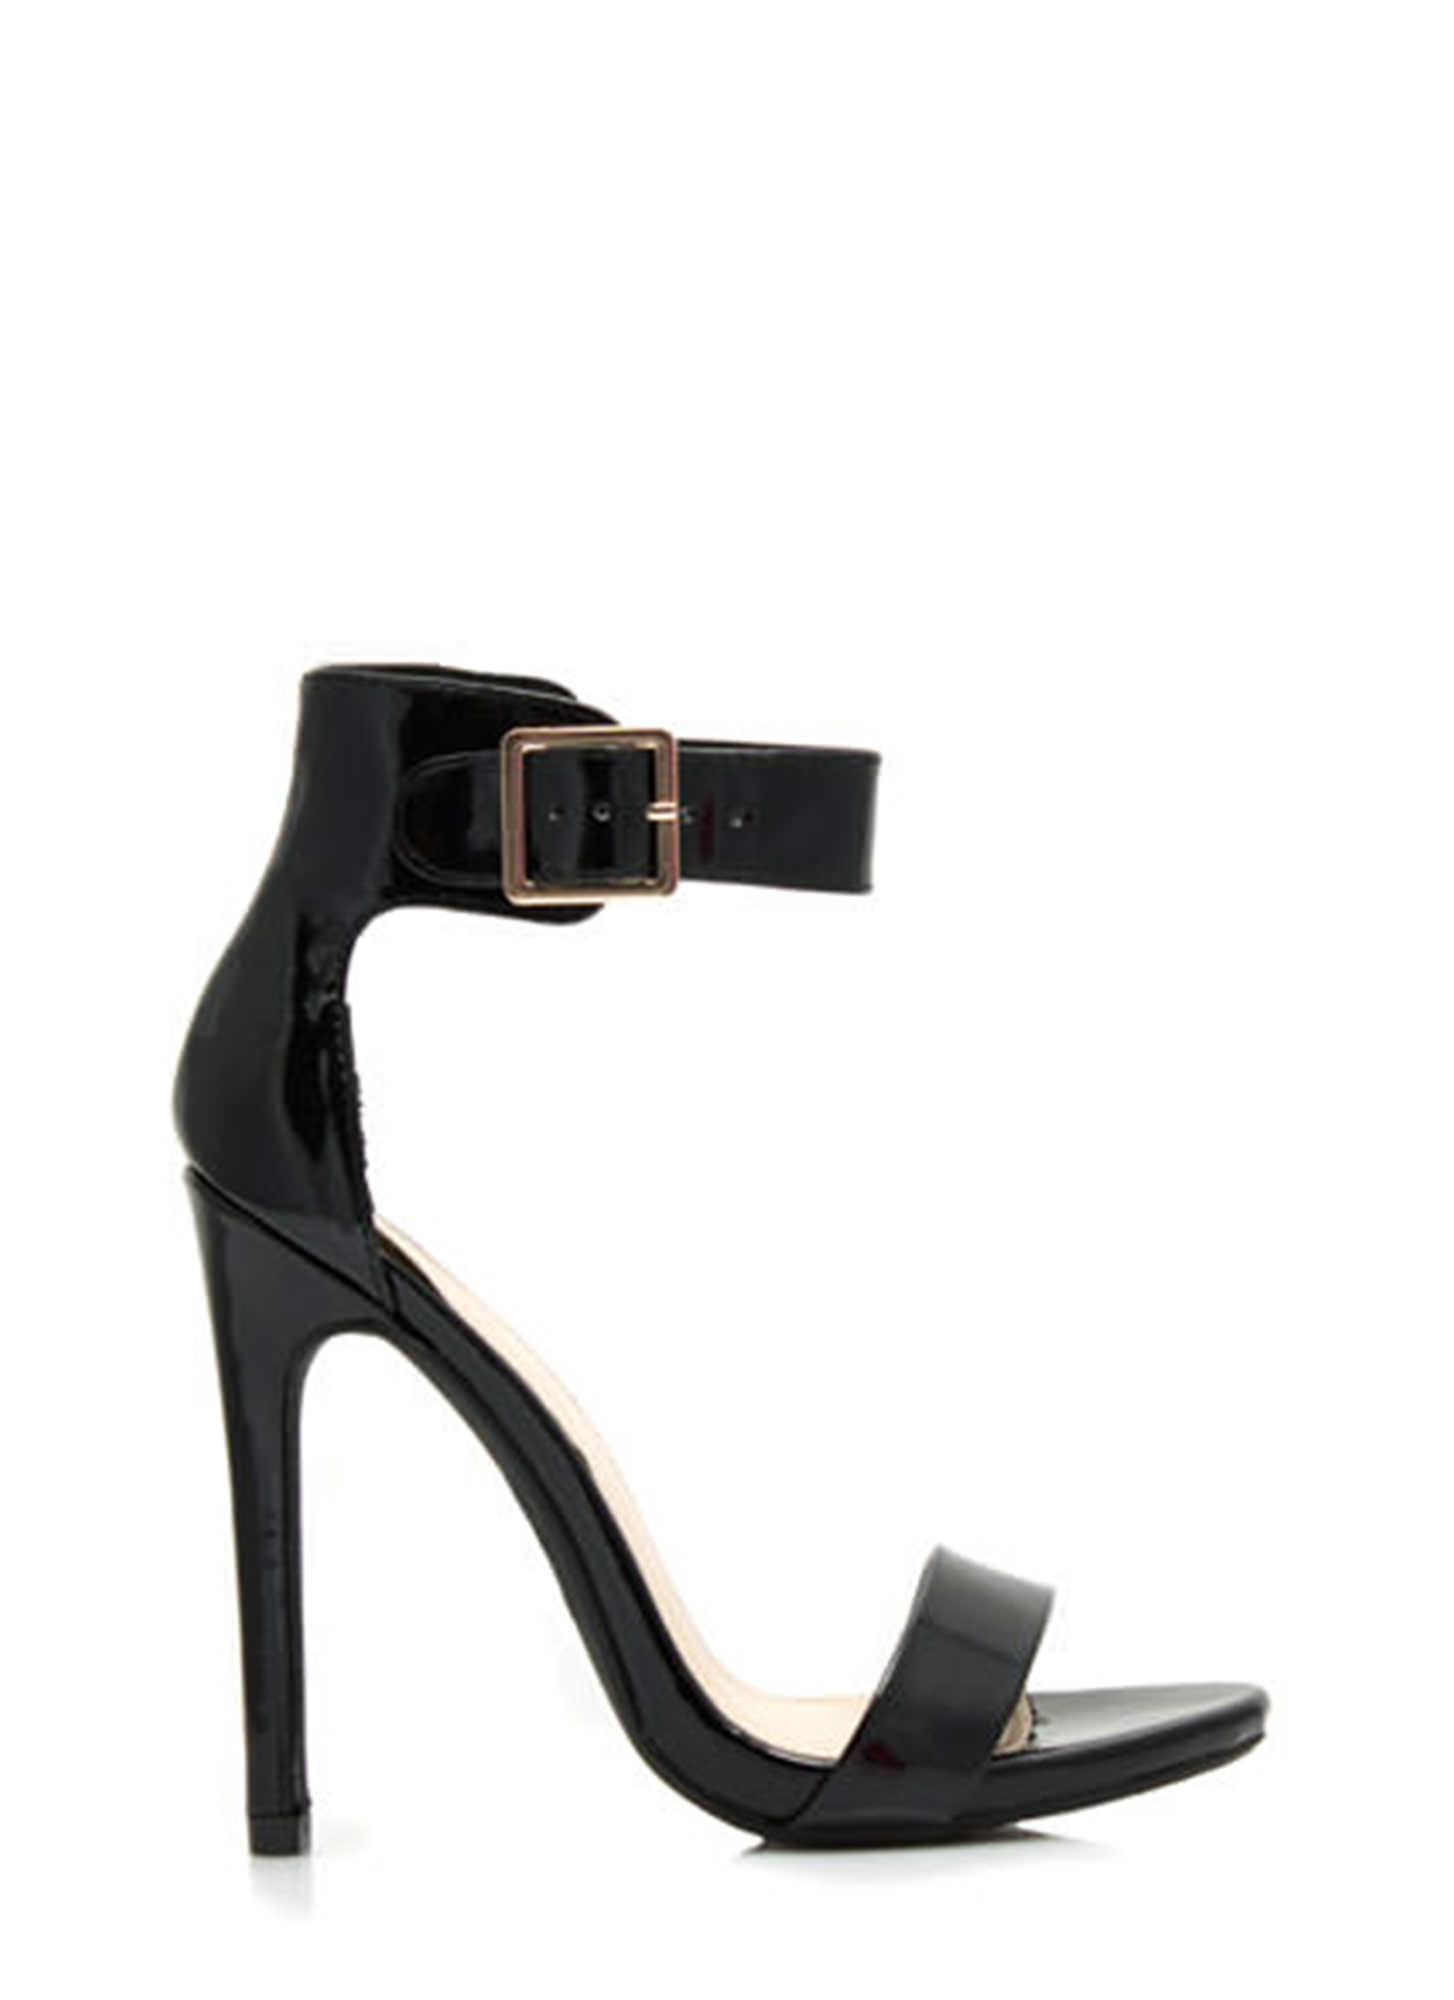 Strapped On Faux Patent Heels BLACK (Final Sale)